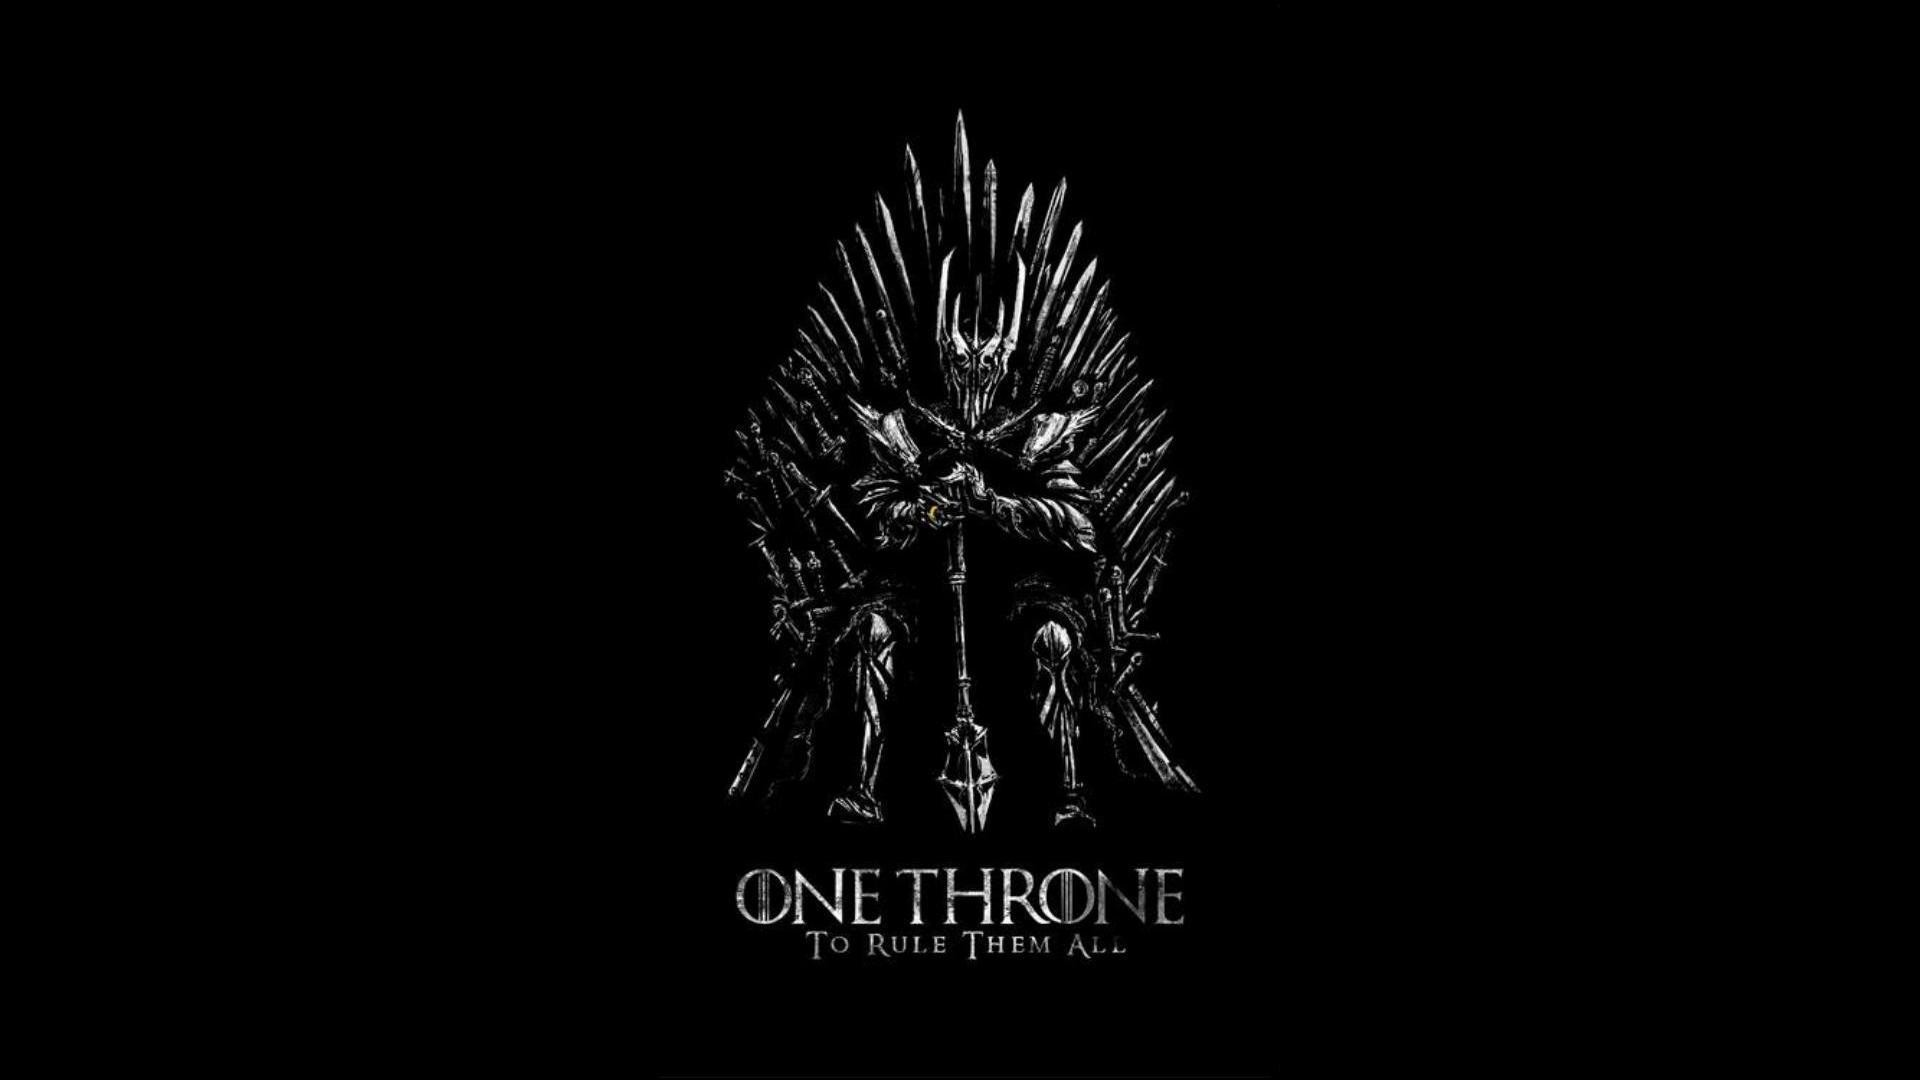 One Throne To Rule Them All